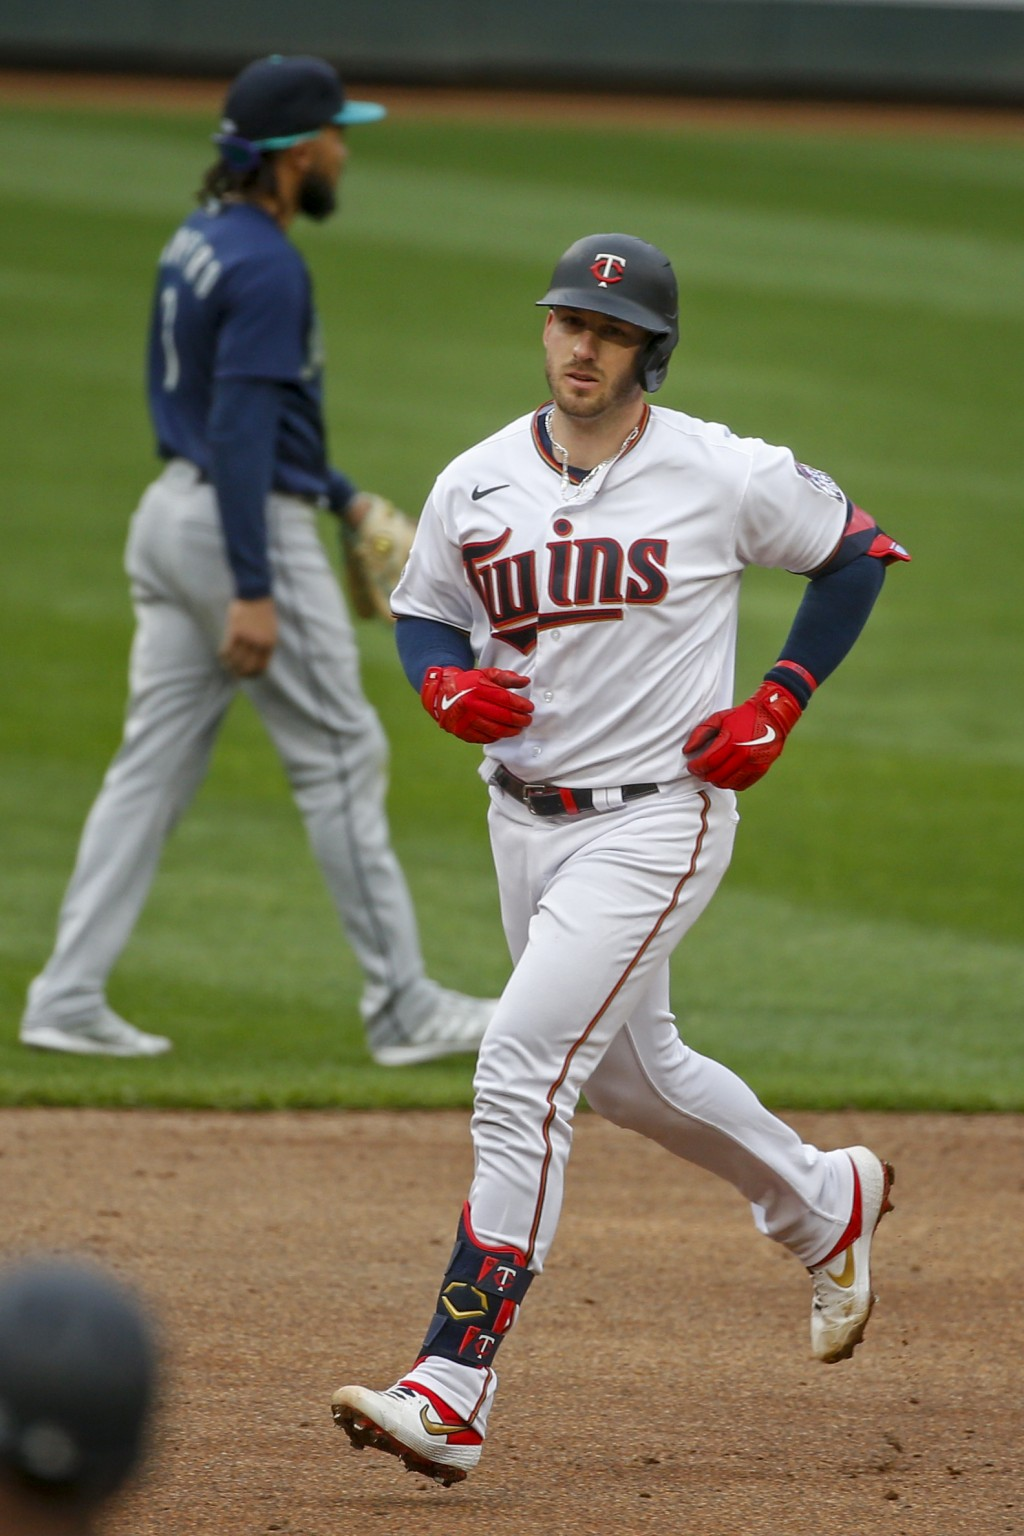 Minnesota Twins' Mitch Garver runs the bases after hitting a three run home run against the Seattle Mariners in the third inning of a baseball game Th...